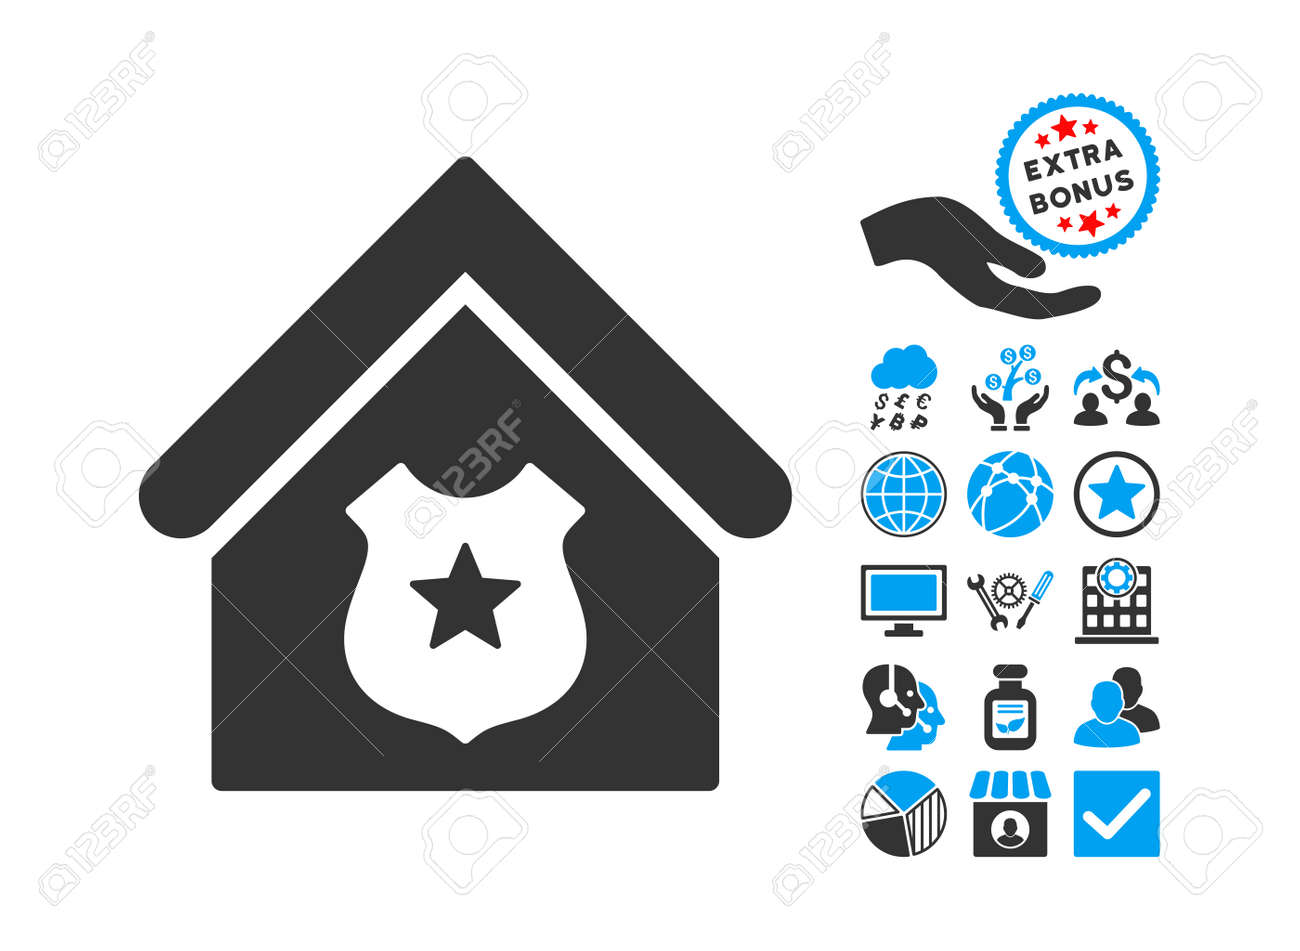 Police Office Pictograph With Bonus Pictogram Vector Illustration